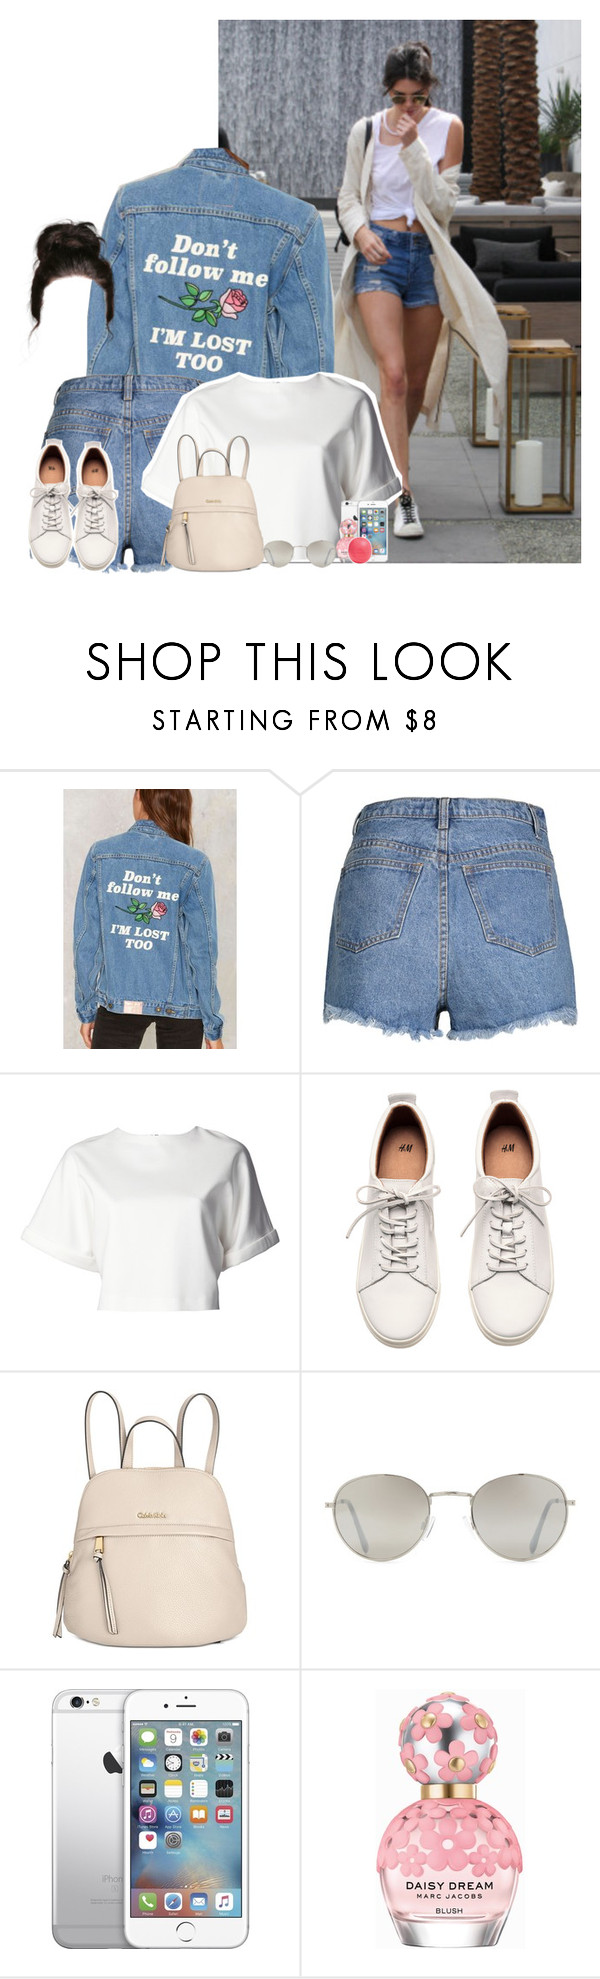 """Out in LA with Kendall"" by fxrever-isnt-for-everyone ❤ liked on Polyvore featuring Kendall + Kylie, Yeah Bunny, ADAM, H&M, Calvin Klein, Forever 21, AT&T, Marc Jacobs, Eos and kendalljenner"